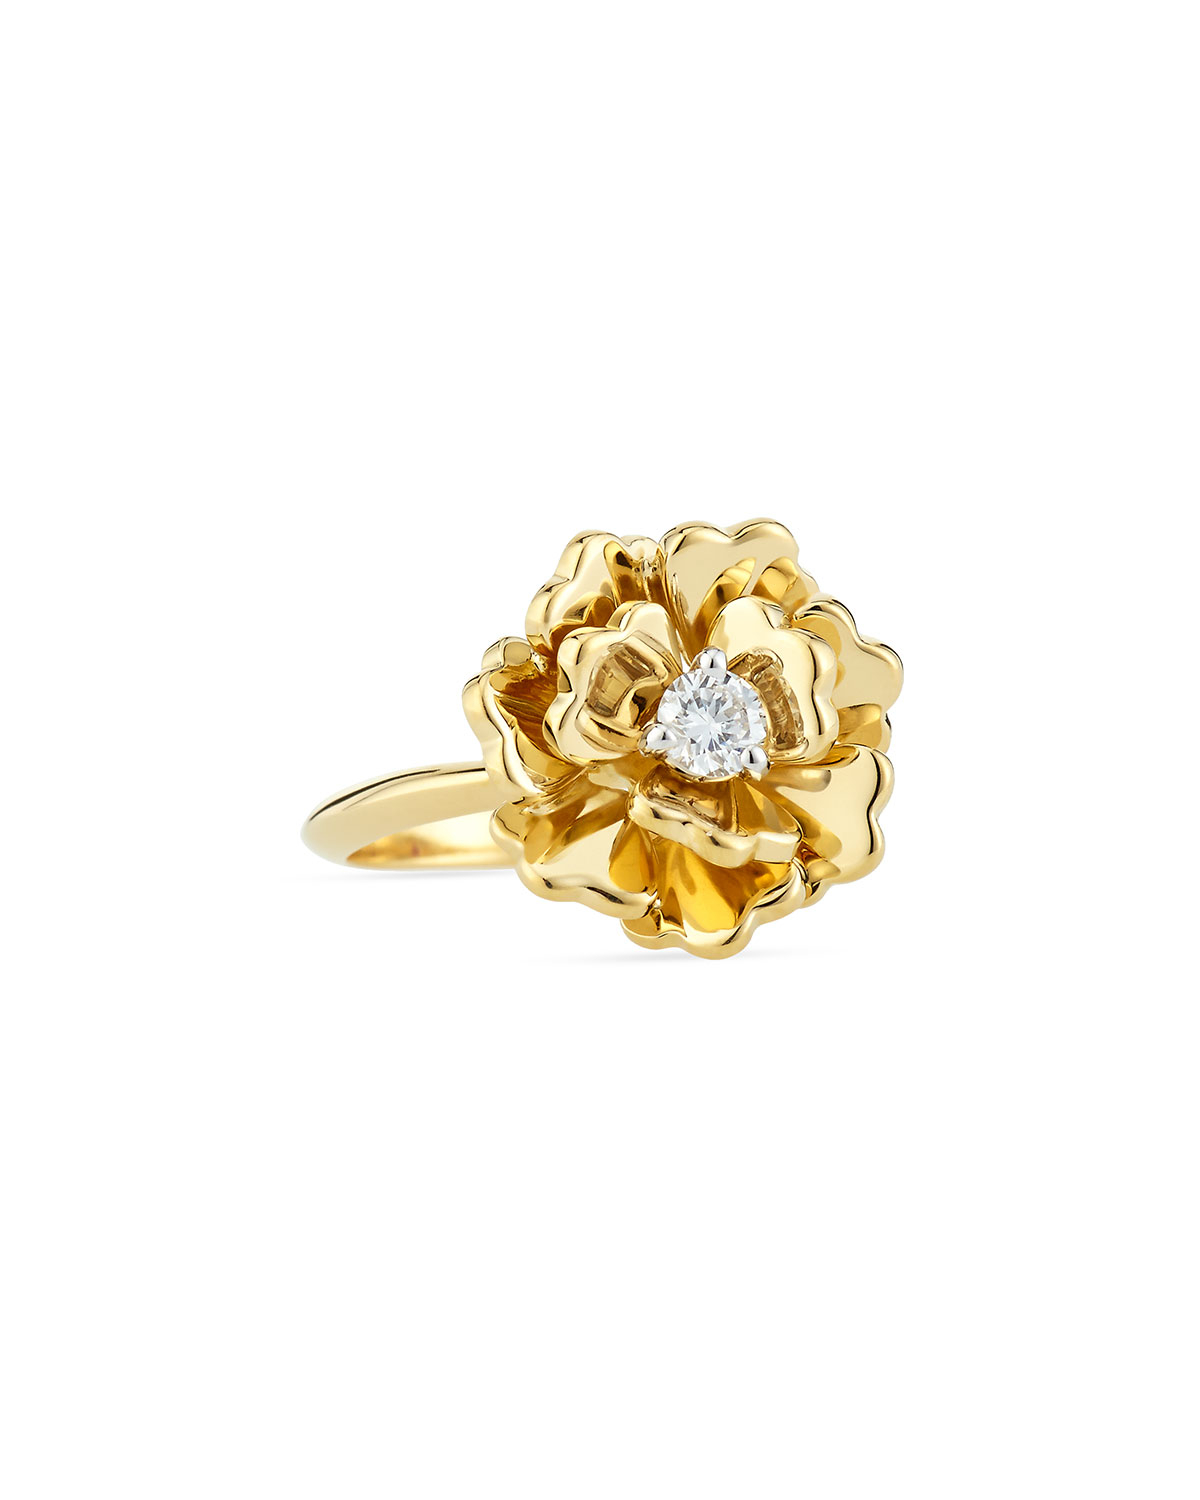 Roberto coin Diamond & Yellow Gold Flower Ring in Yellow